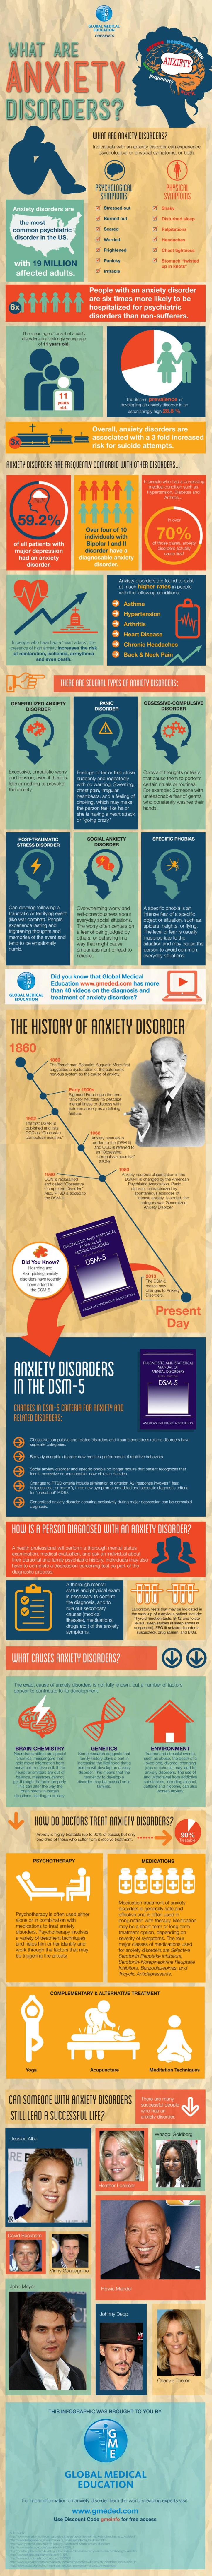 WhatAreAnxietyDisorders_523343d3e5069